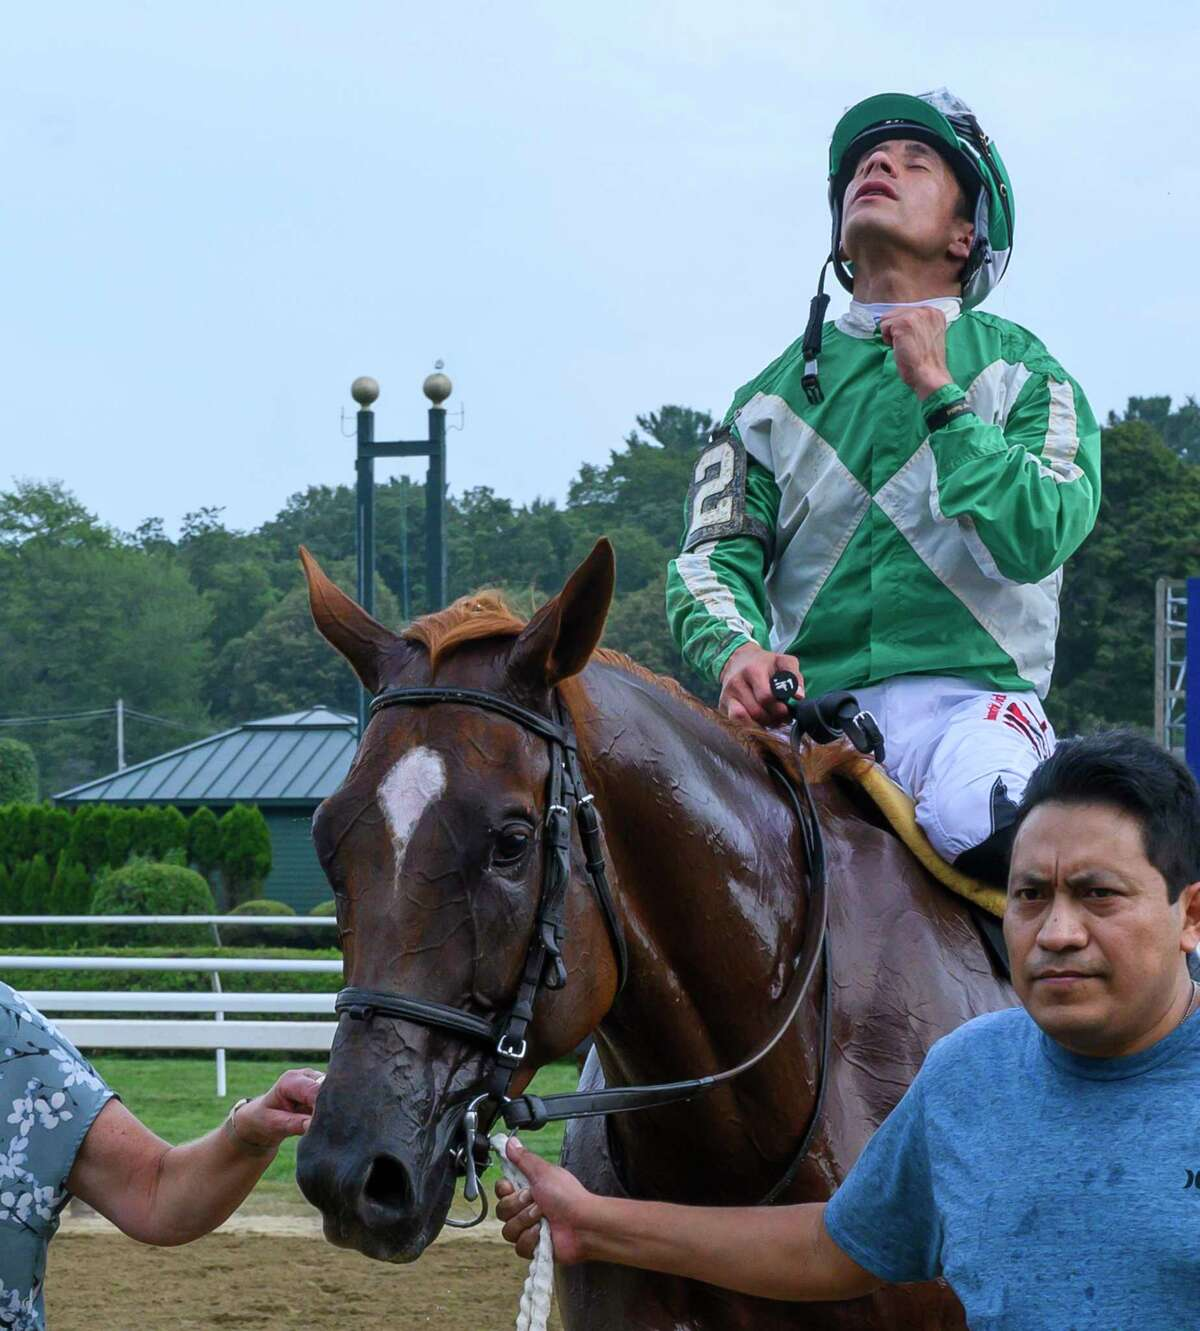 Mr. Buff with jockey Junior Alvarado heads to the winnerA?•s circle after an easy win in the 38th running of the Evan Shipman the Saratoga Race Course Wednesday Aug. 7, 2019 in Saratoga Springs, N.Y. Photo Special to the Times Union by Skip Dickstein